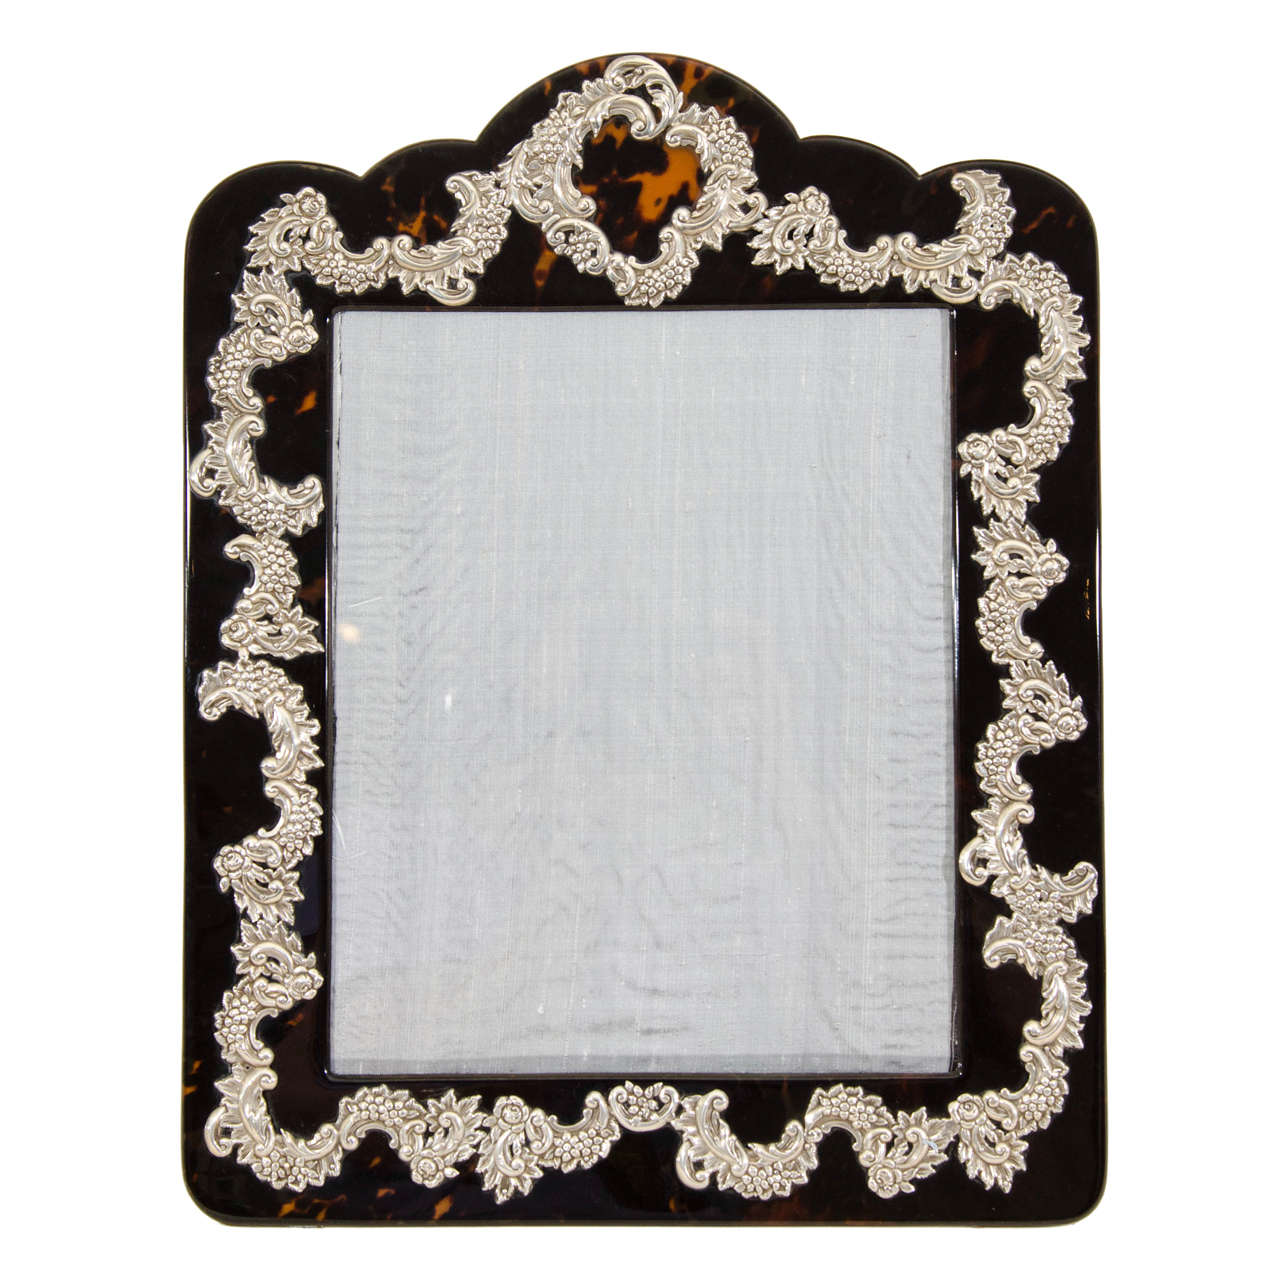 Large English Art Deco Silver-Mounted Faux Tortoiseshell Photograph Frame